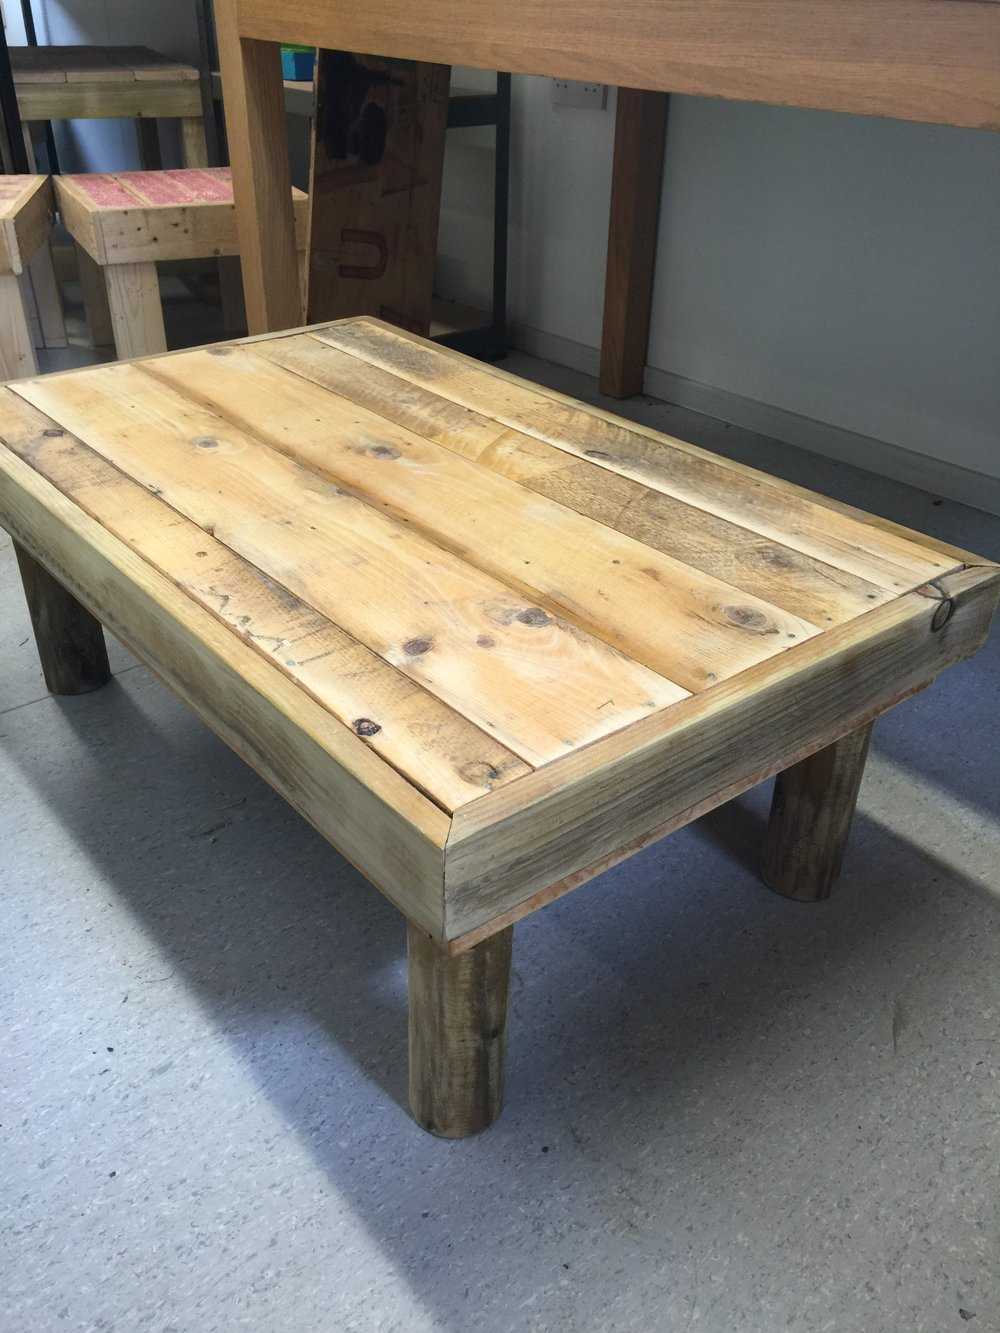 Pallet Coffee Table105cm x 70 cm x 38 high £65: Varnished then sanded to make a lovely smooth suface. But can be left plain.